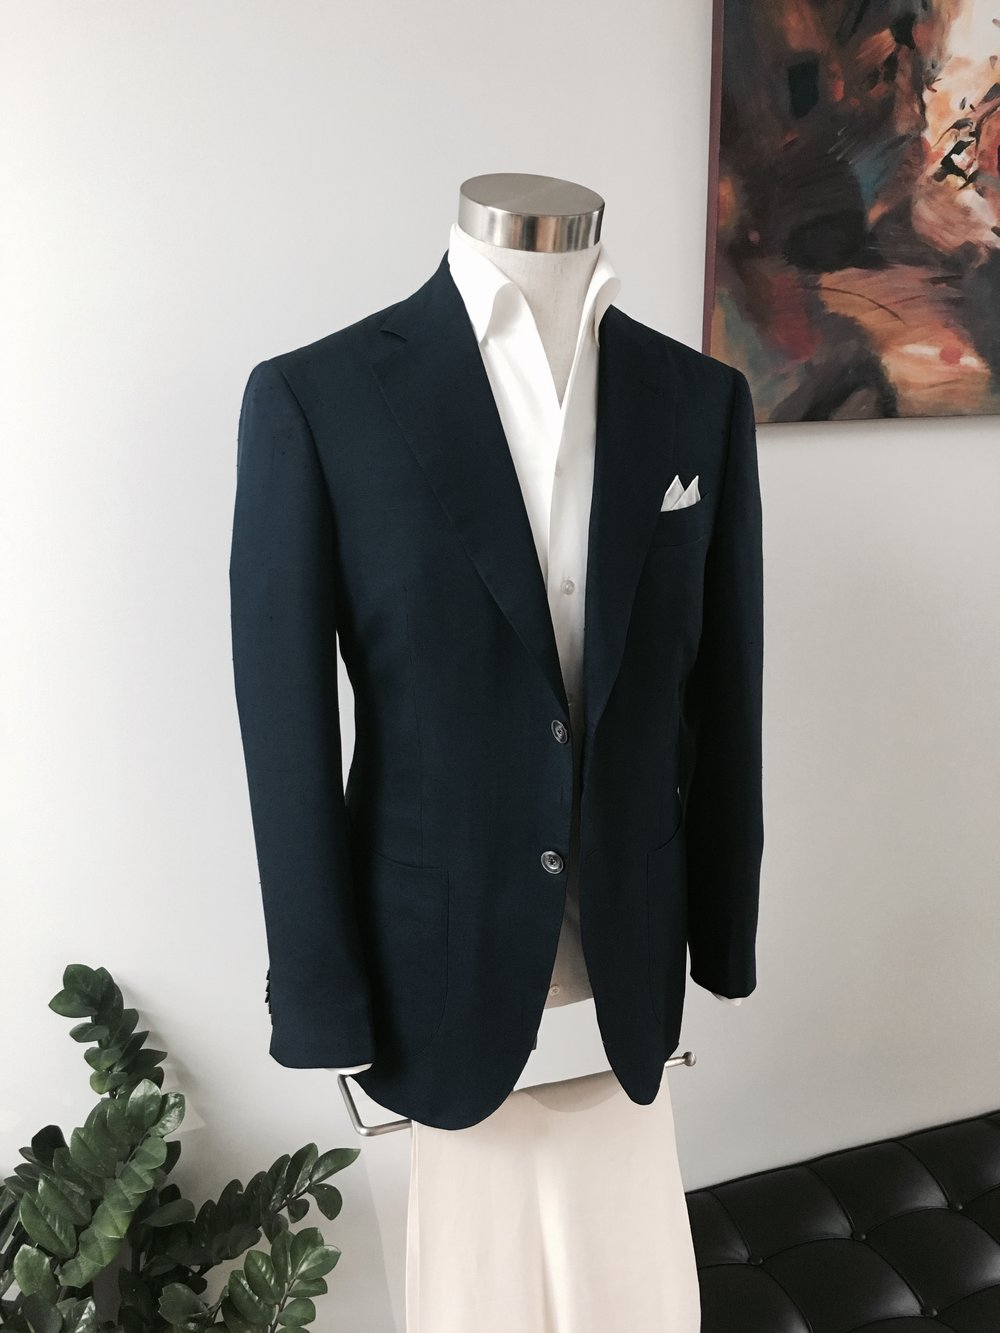 Events Silk Blazer & Ivory Linen Leisure Trousers.    (Available in Bespoke & Made to Measure)